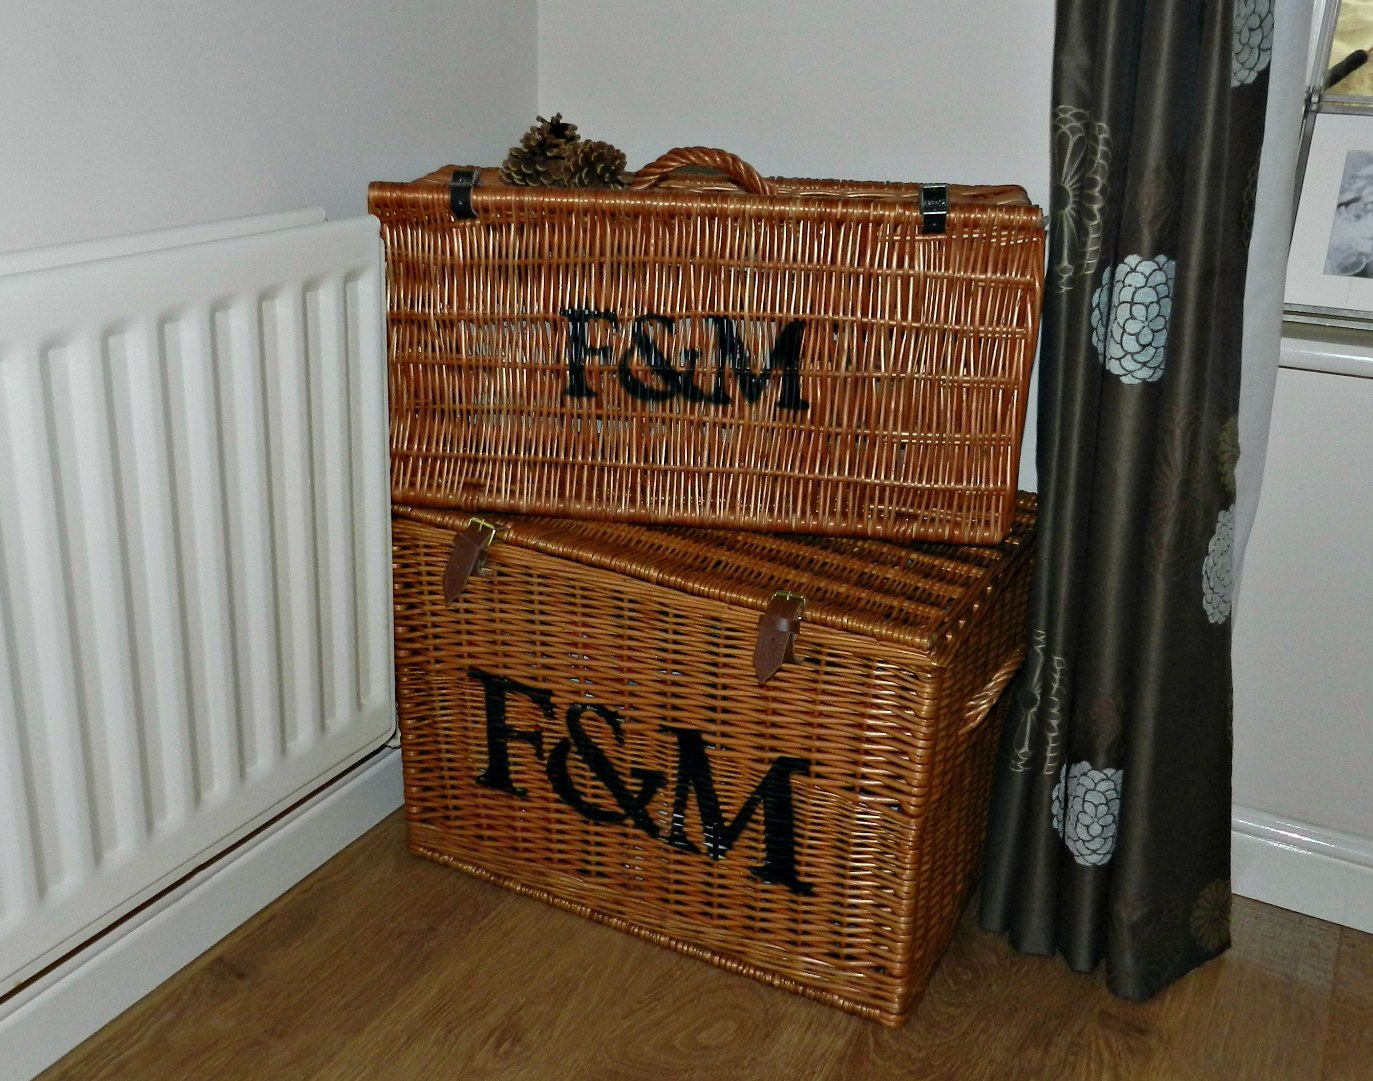 toy storage – Fortnam and Mason Hampers